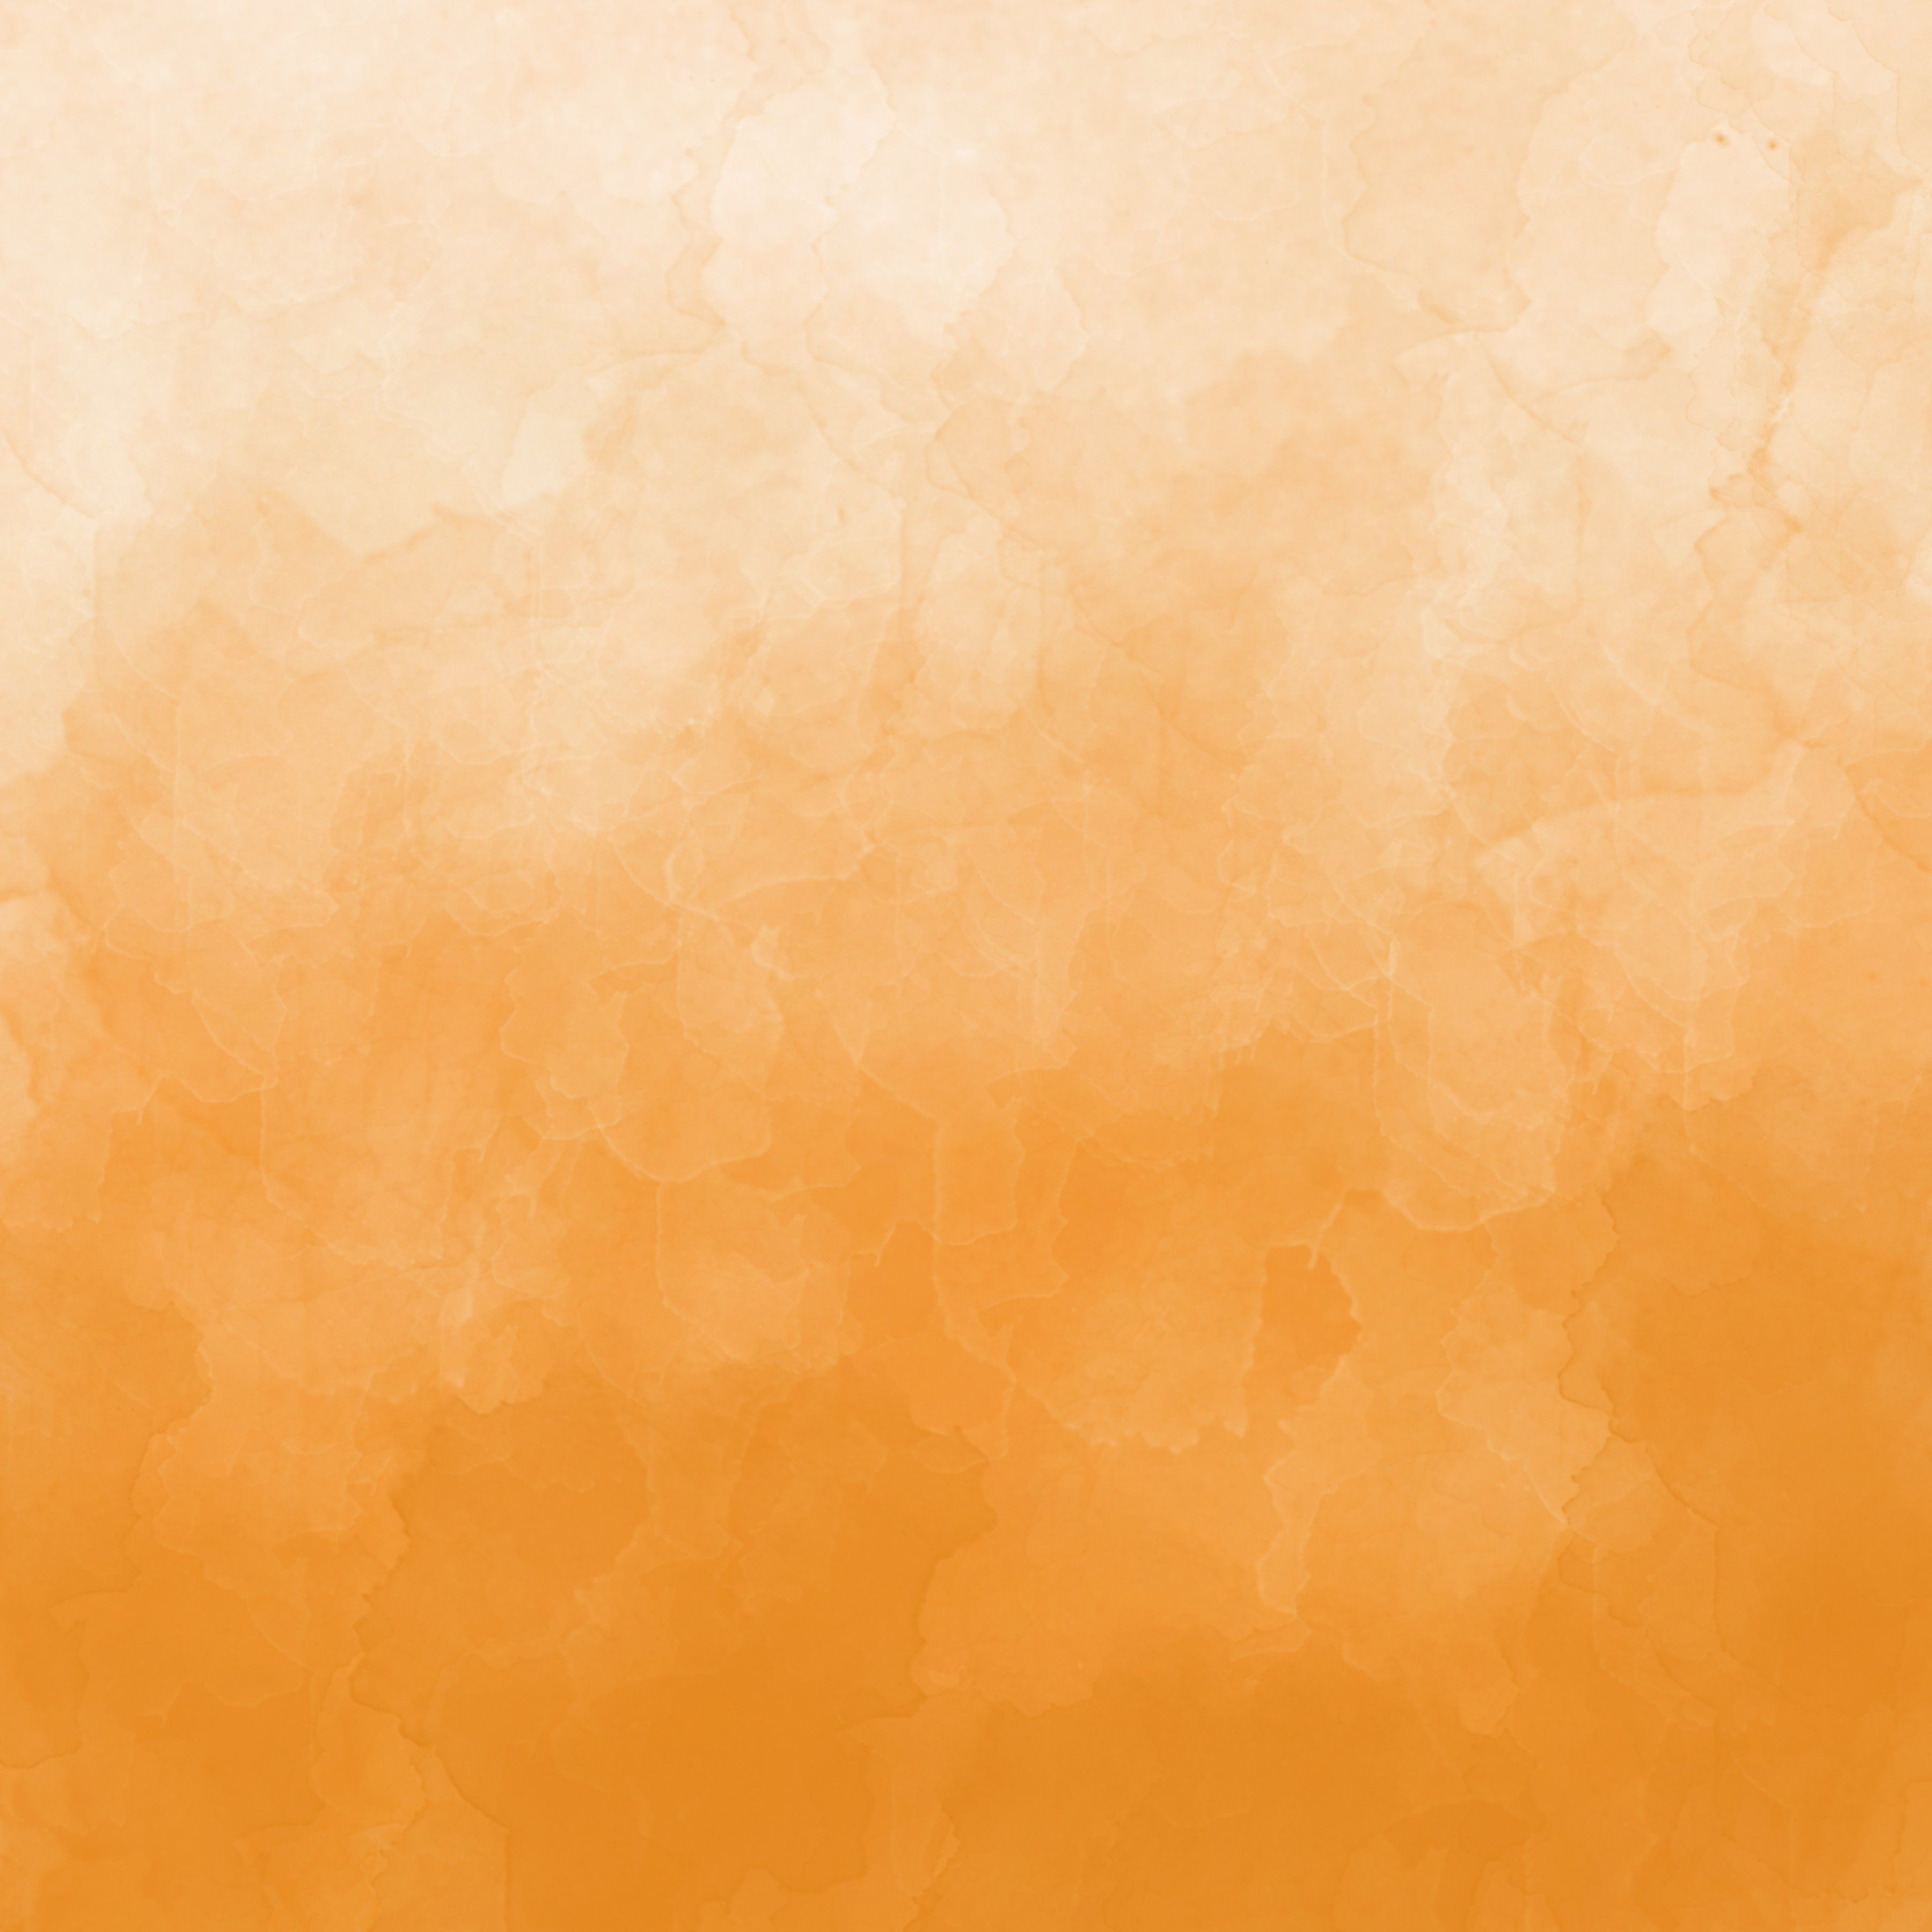 Ombre Watercolor Autumn Backgrounds Watercolor Ombre Watercolor